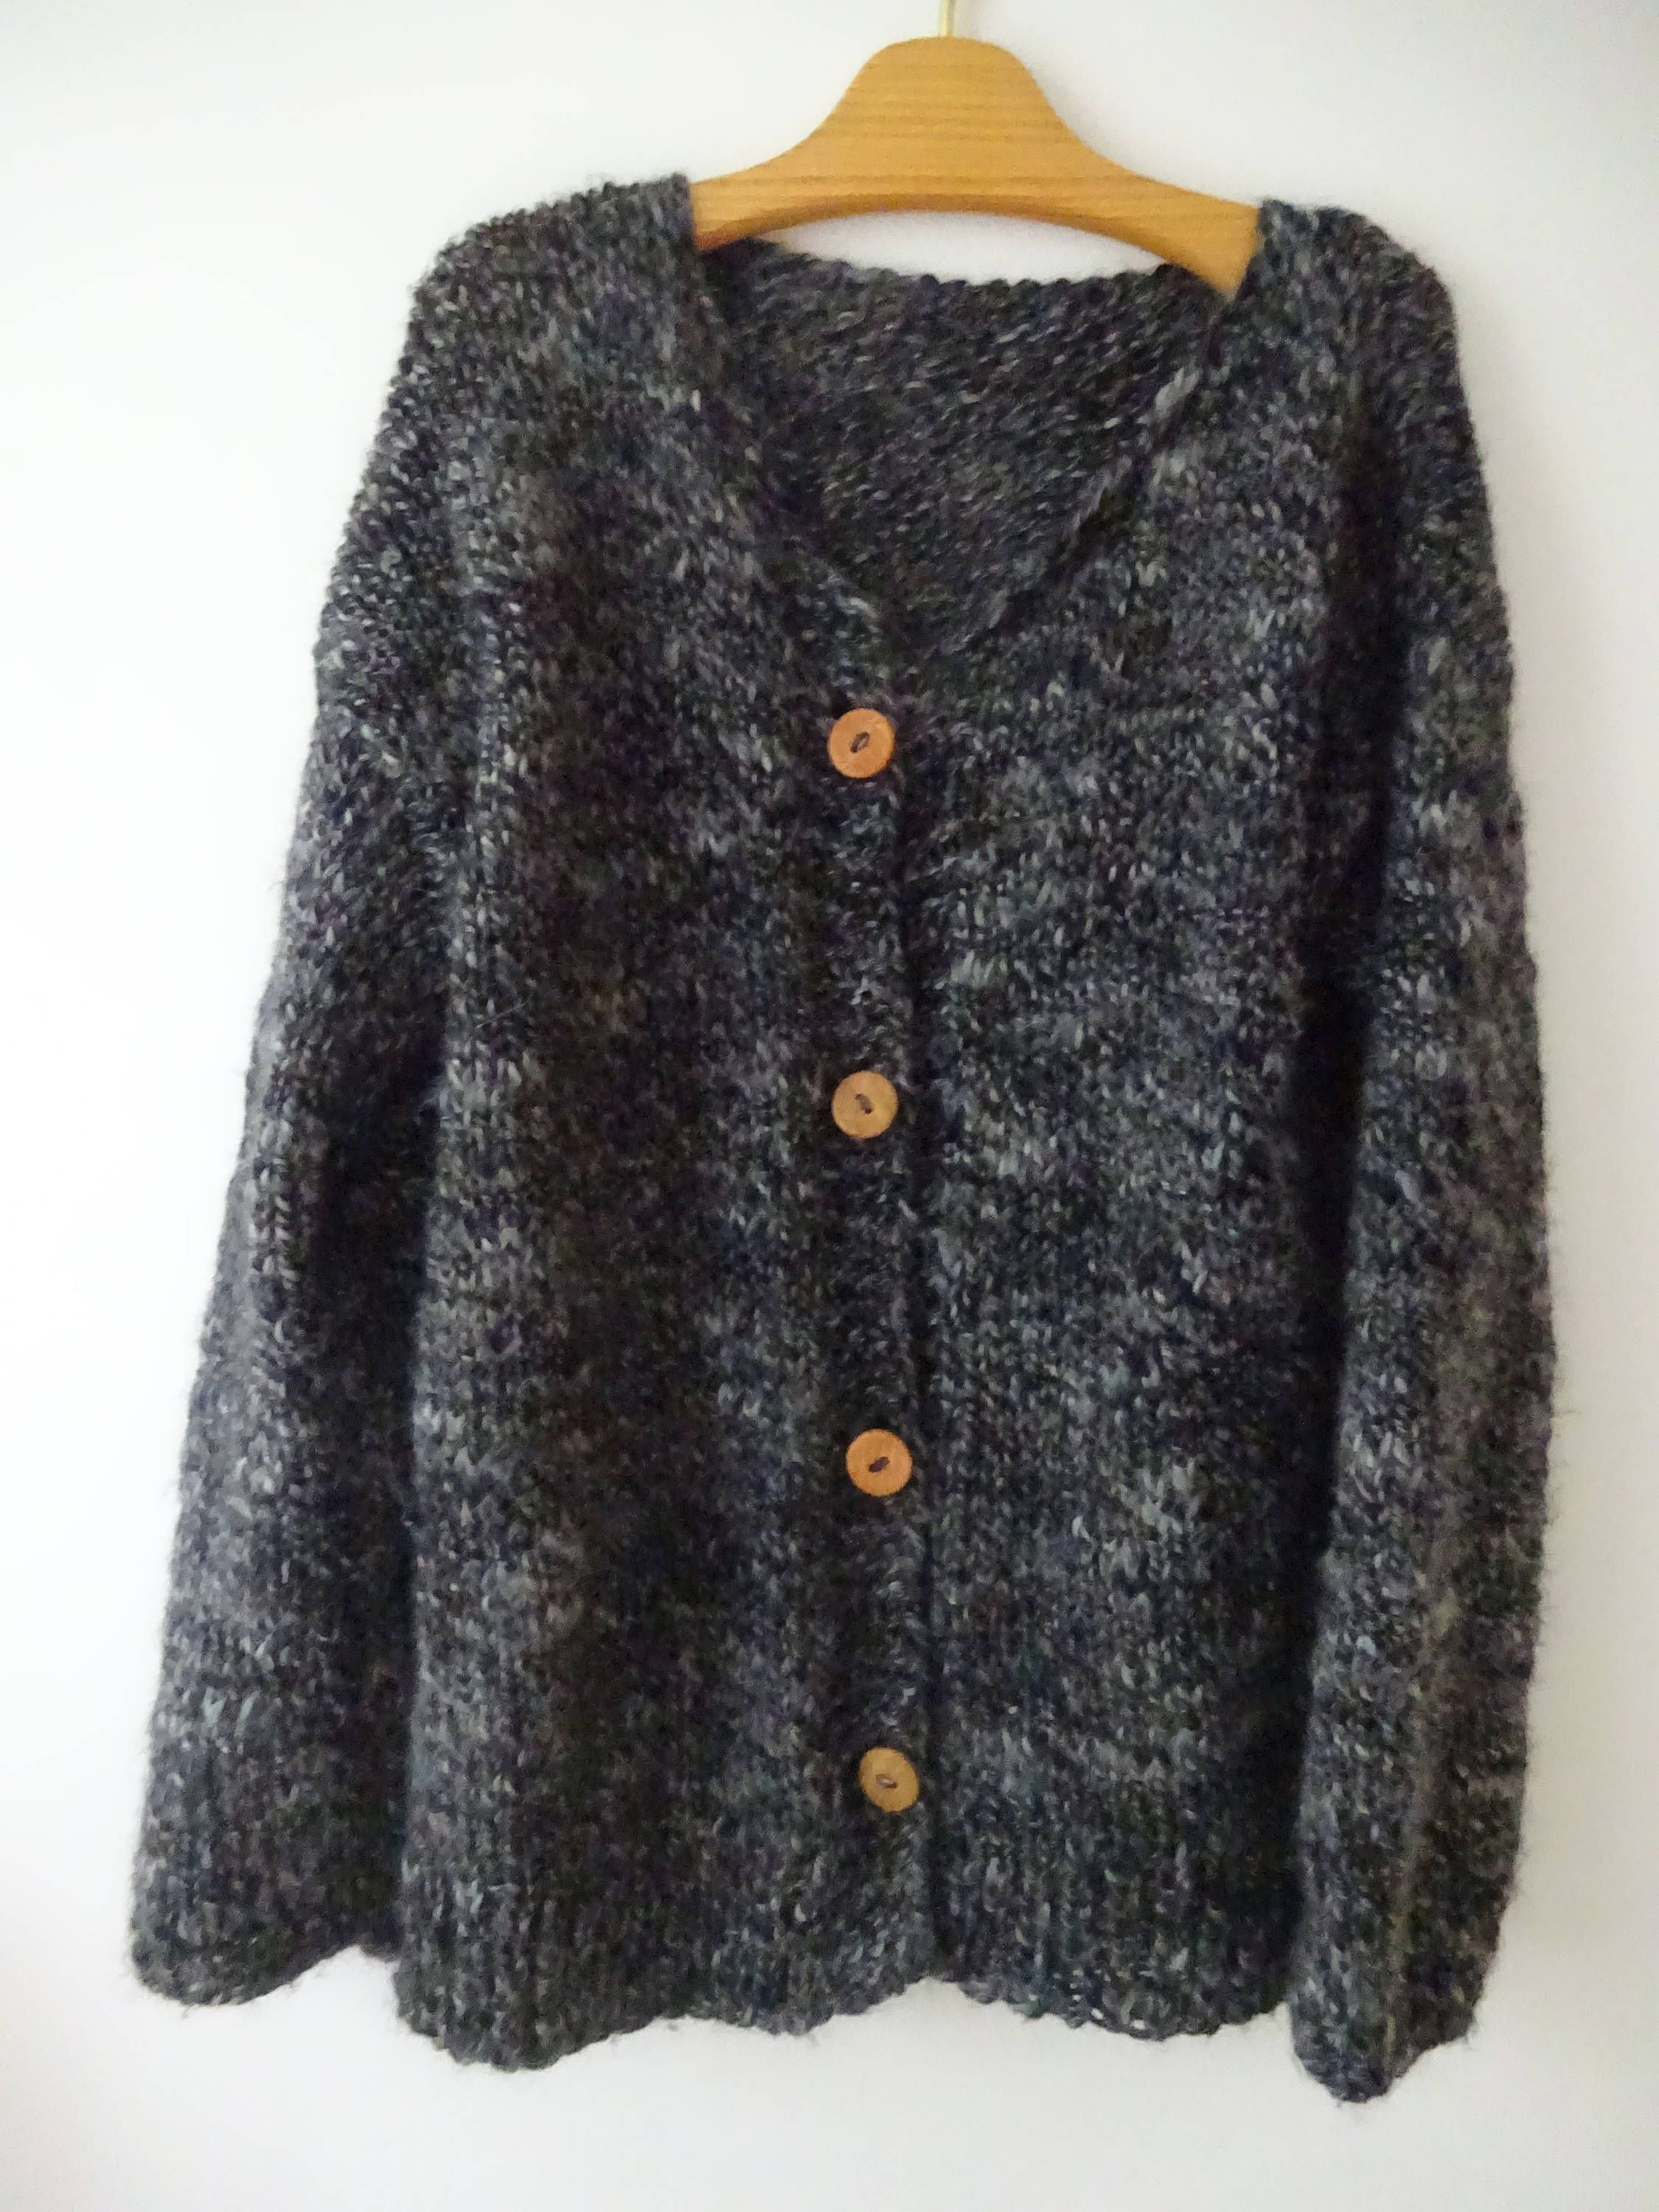 Chunky cardigan; slouchy cardigan; fall clothing; cardigan; knitted cardigan; urban clothing knitted; fall fashion; knit gift; trend; cozy